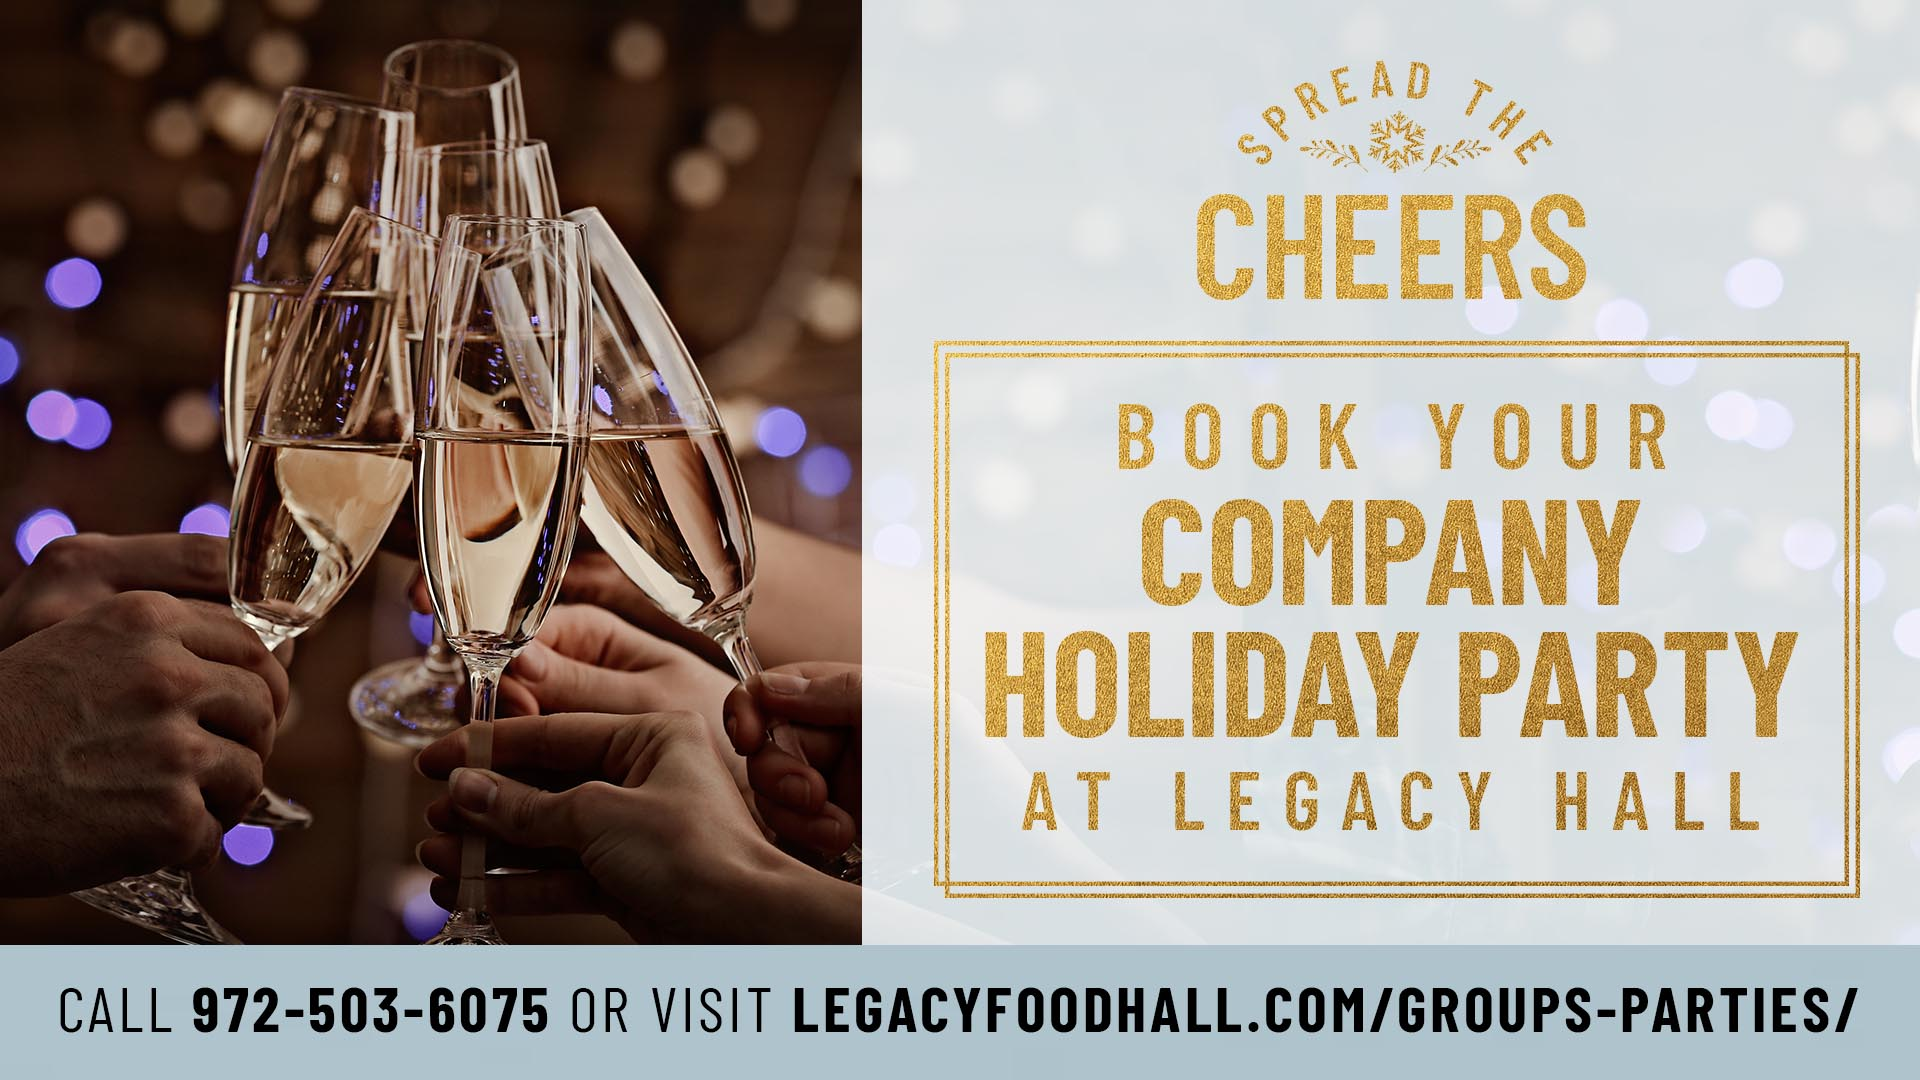 Book your company holiday party